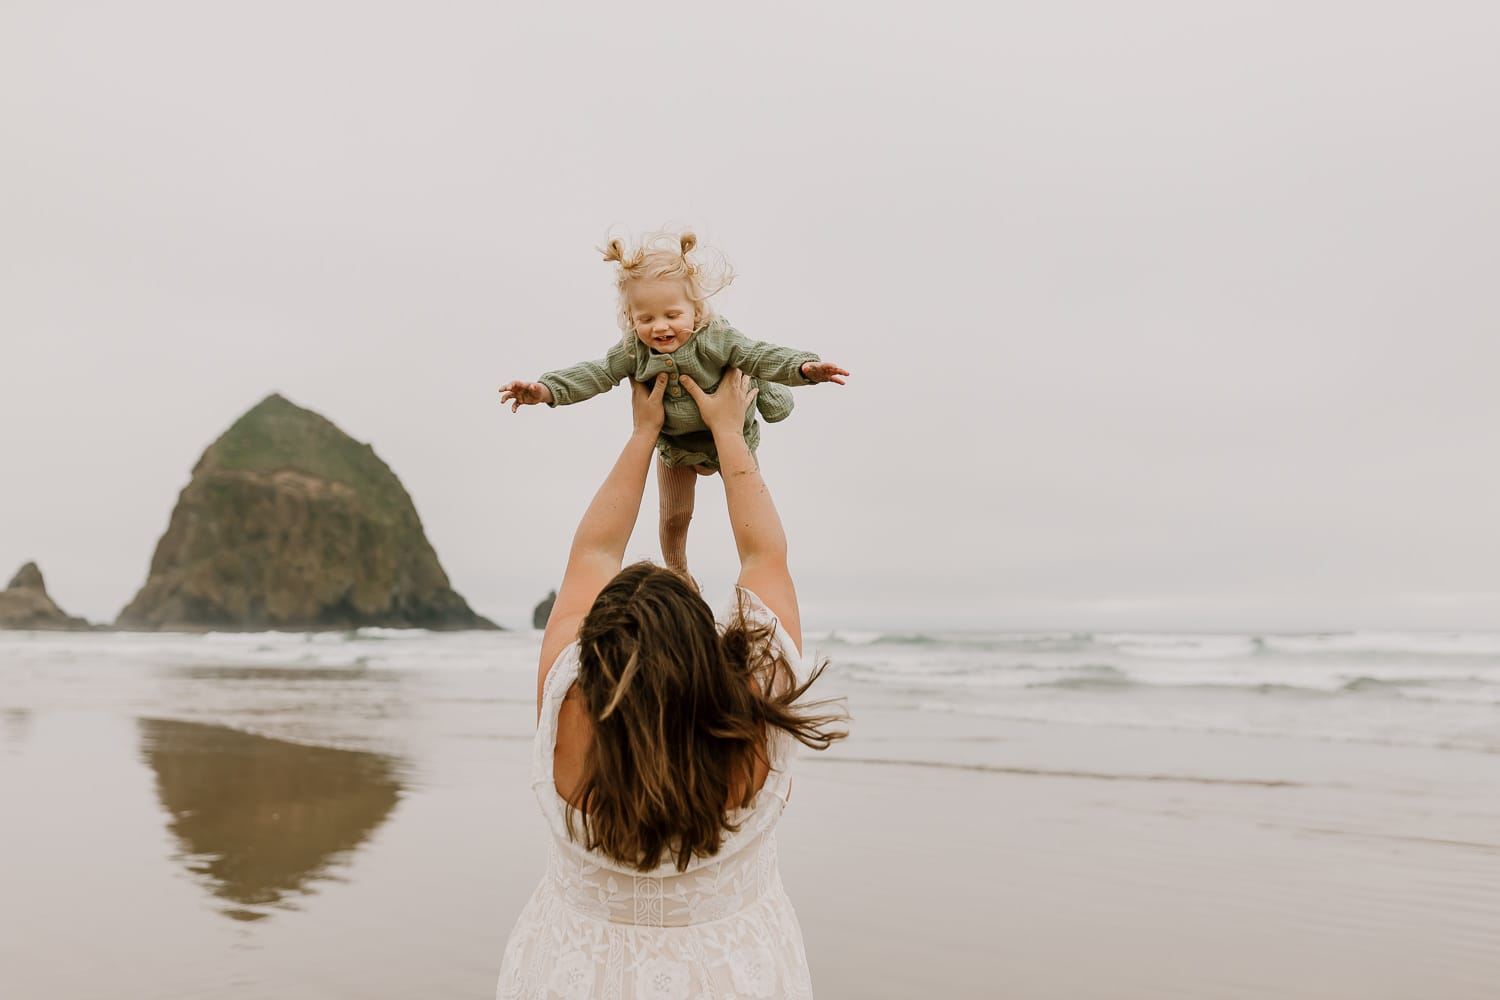 Mom holding her baby in the air like an airplane with haystack rock behind them during adventure family photos